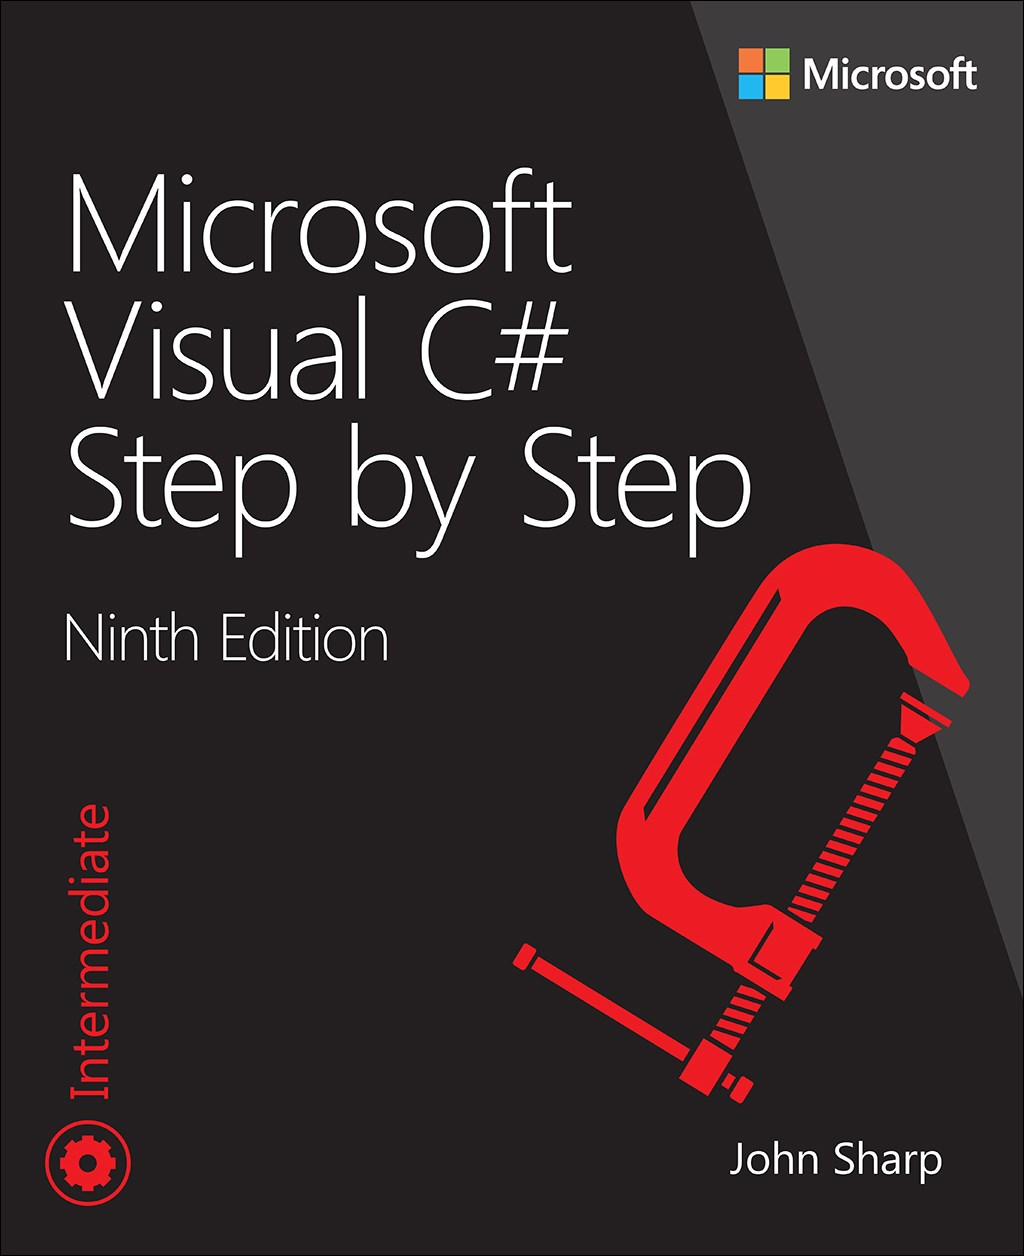 Microsoft visual c step by step 9th edition microsoft press store microsoft visual c step by step 9th edition fandeluxe Images